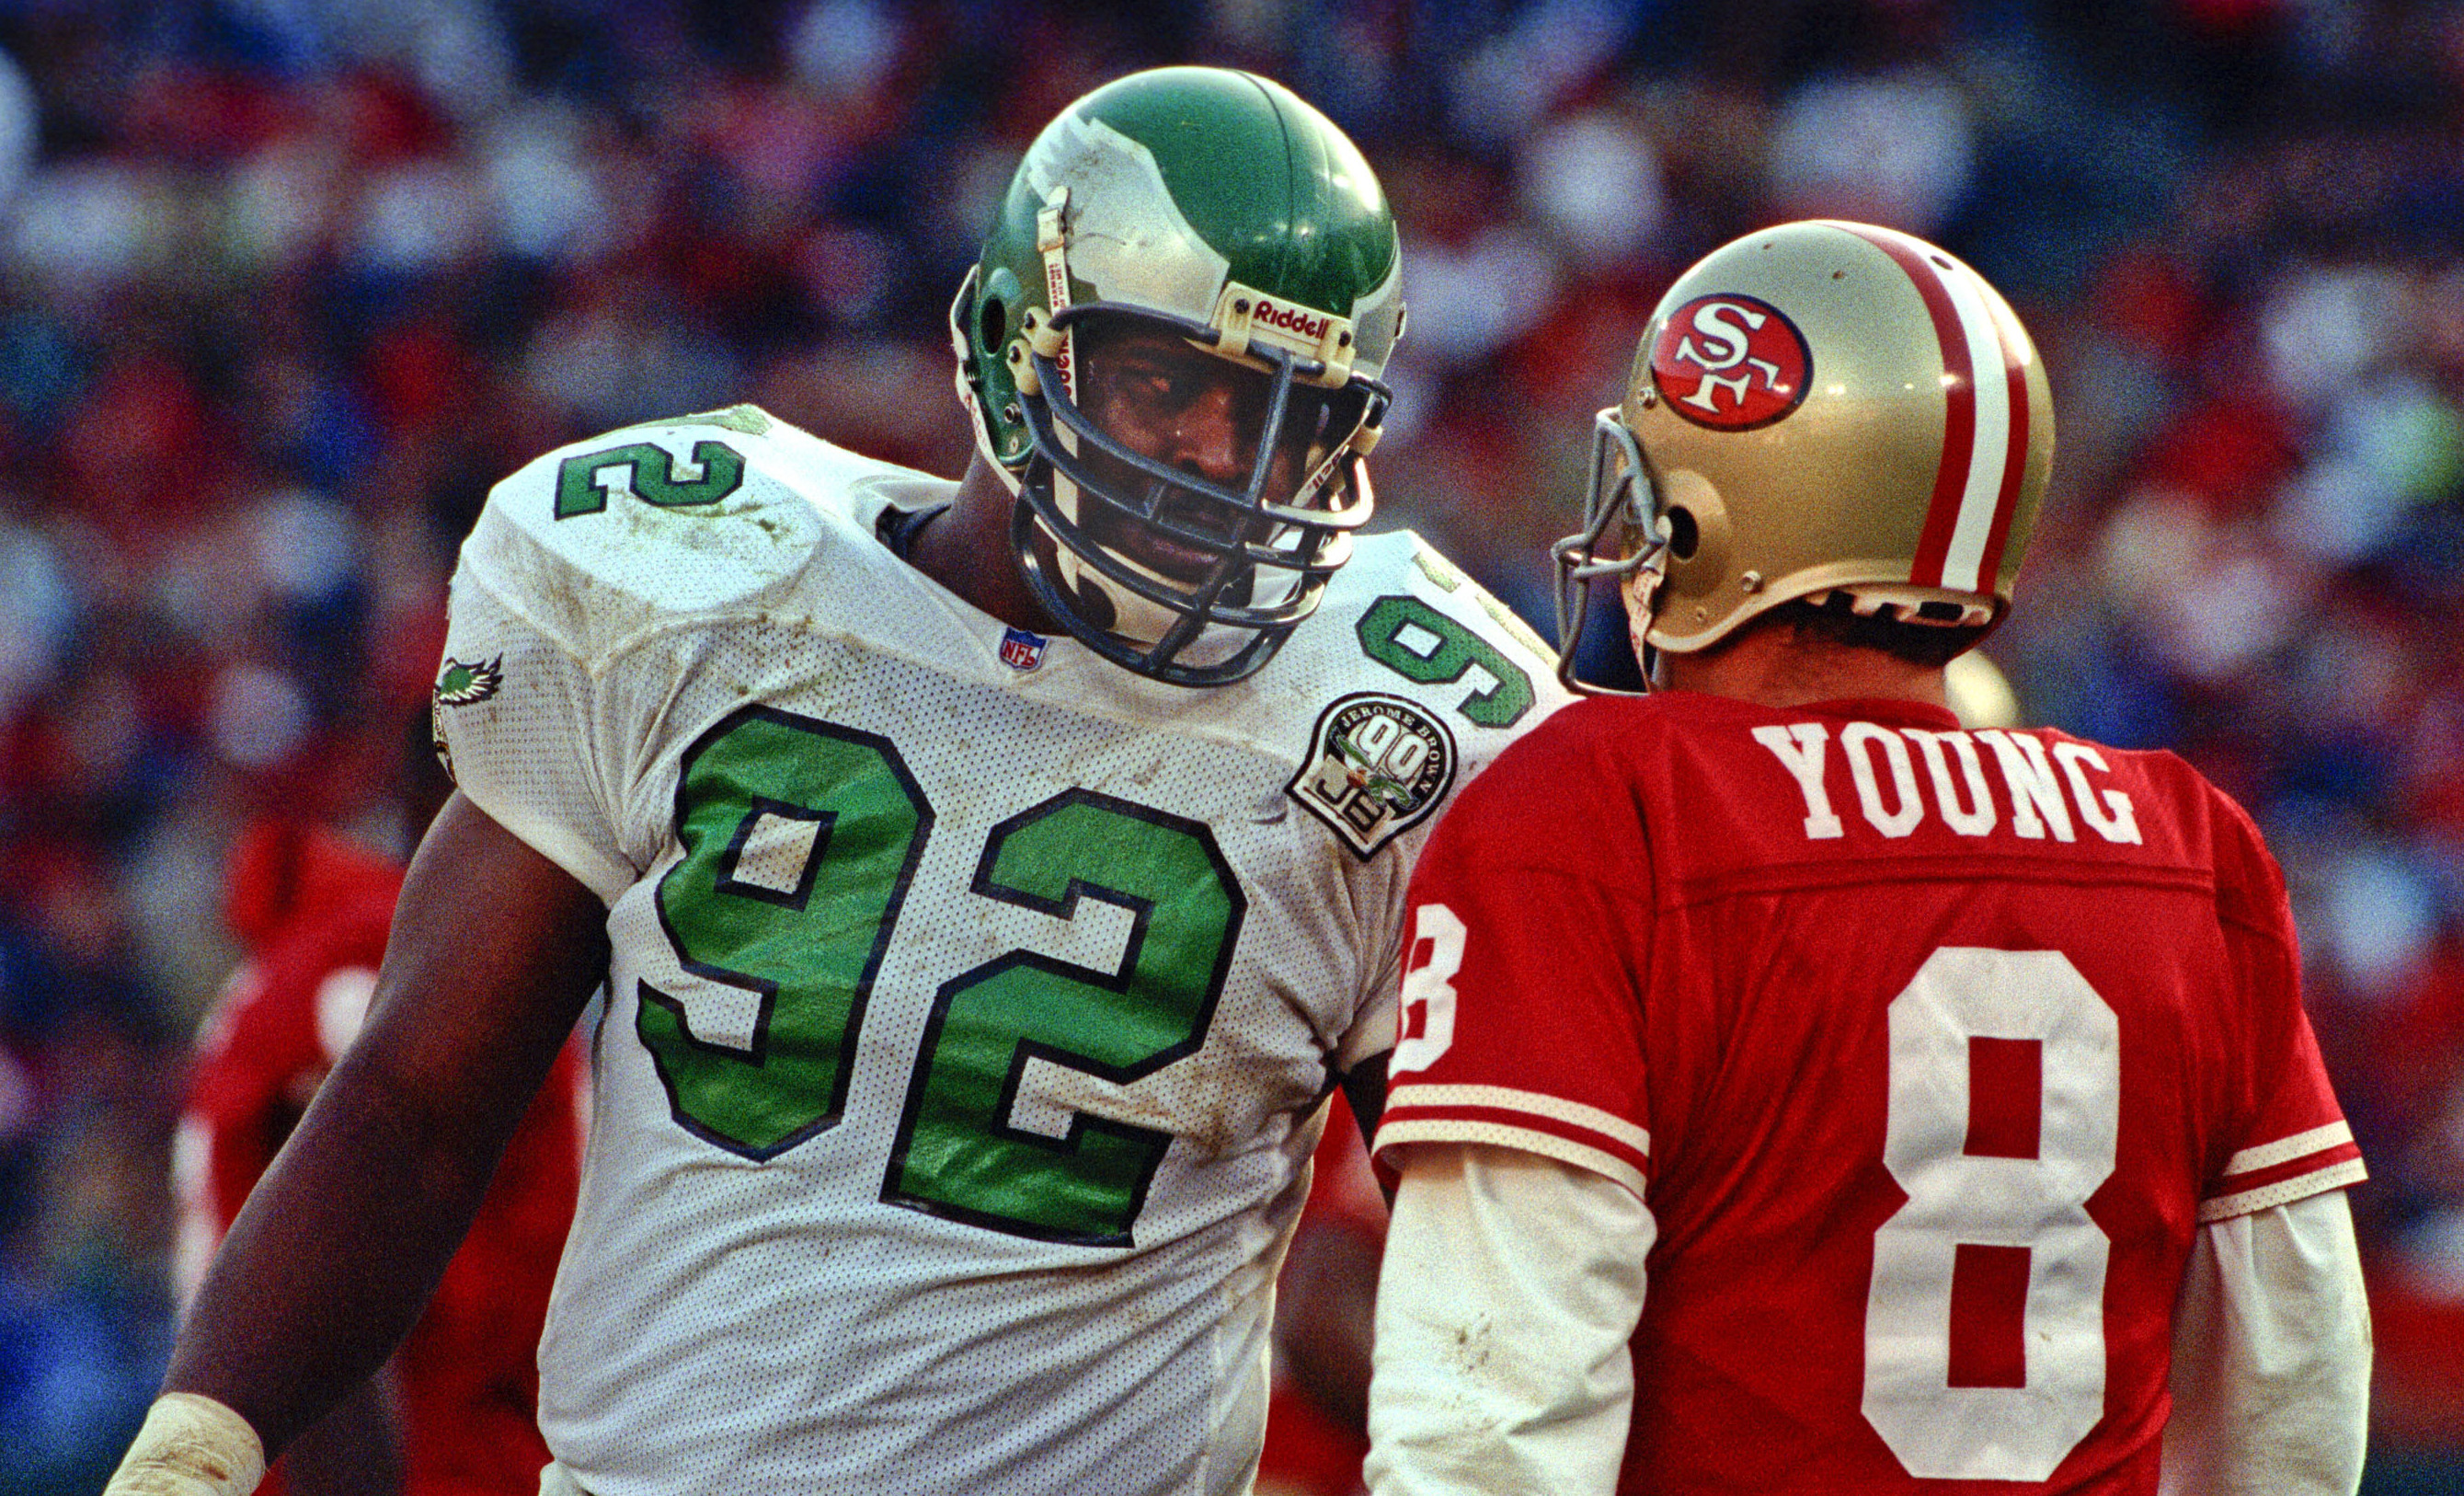 Reggie White, Steve Young